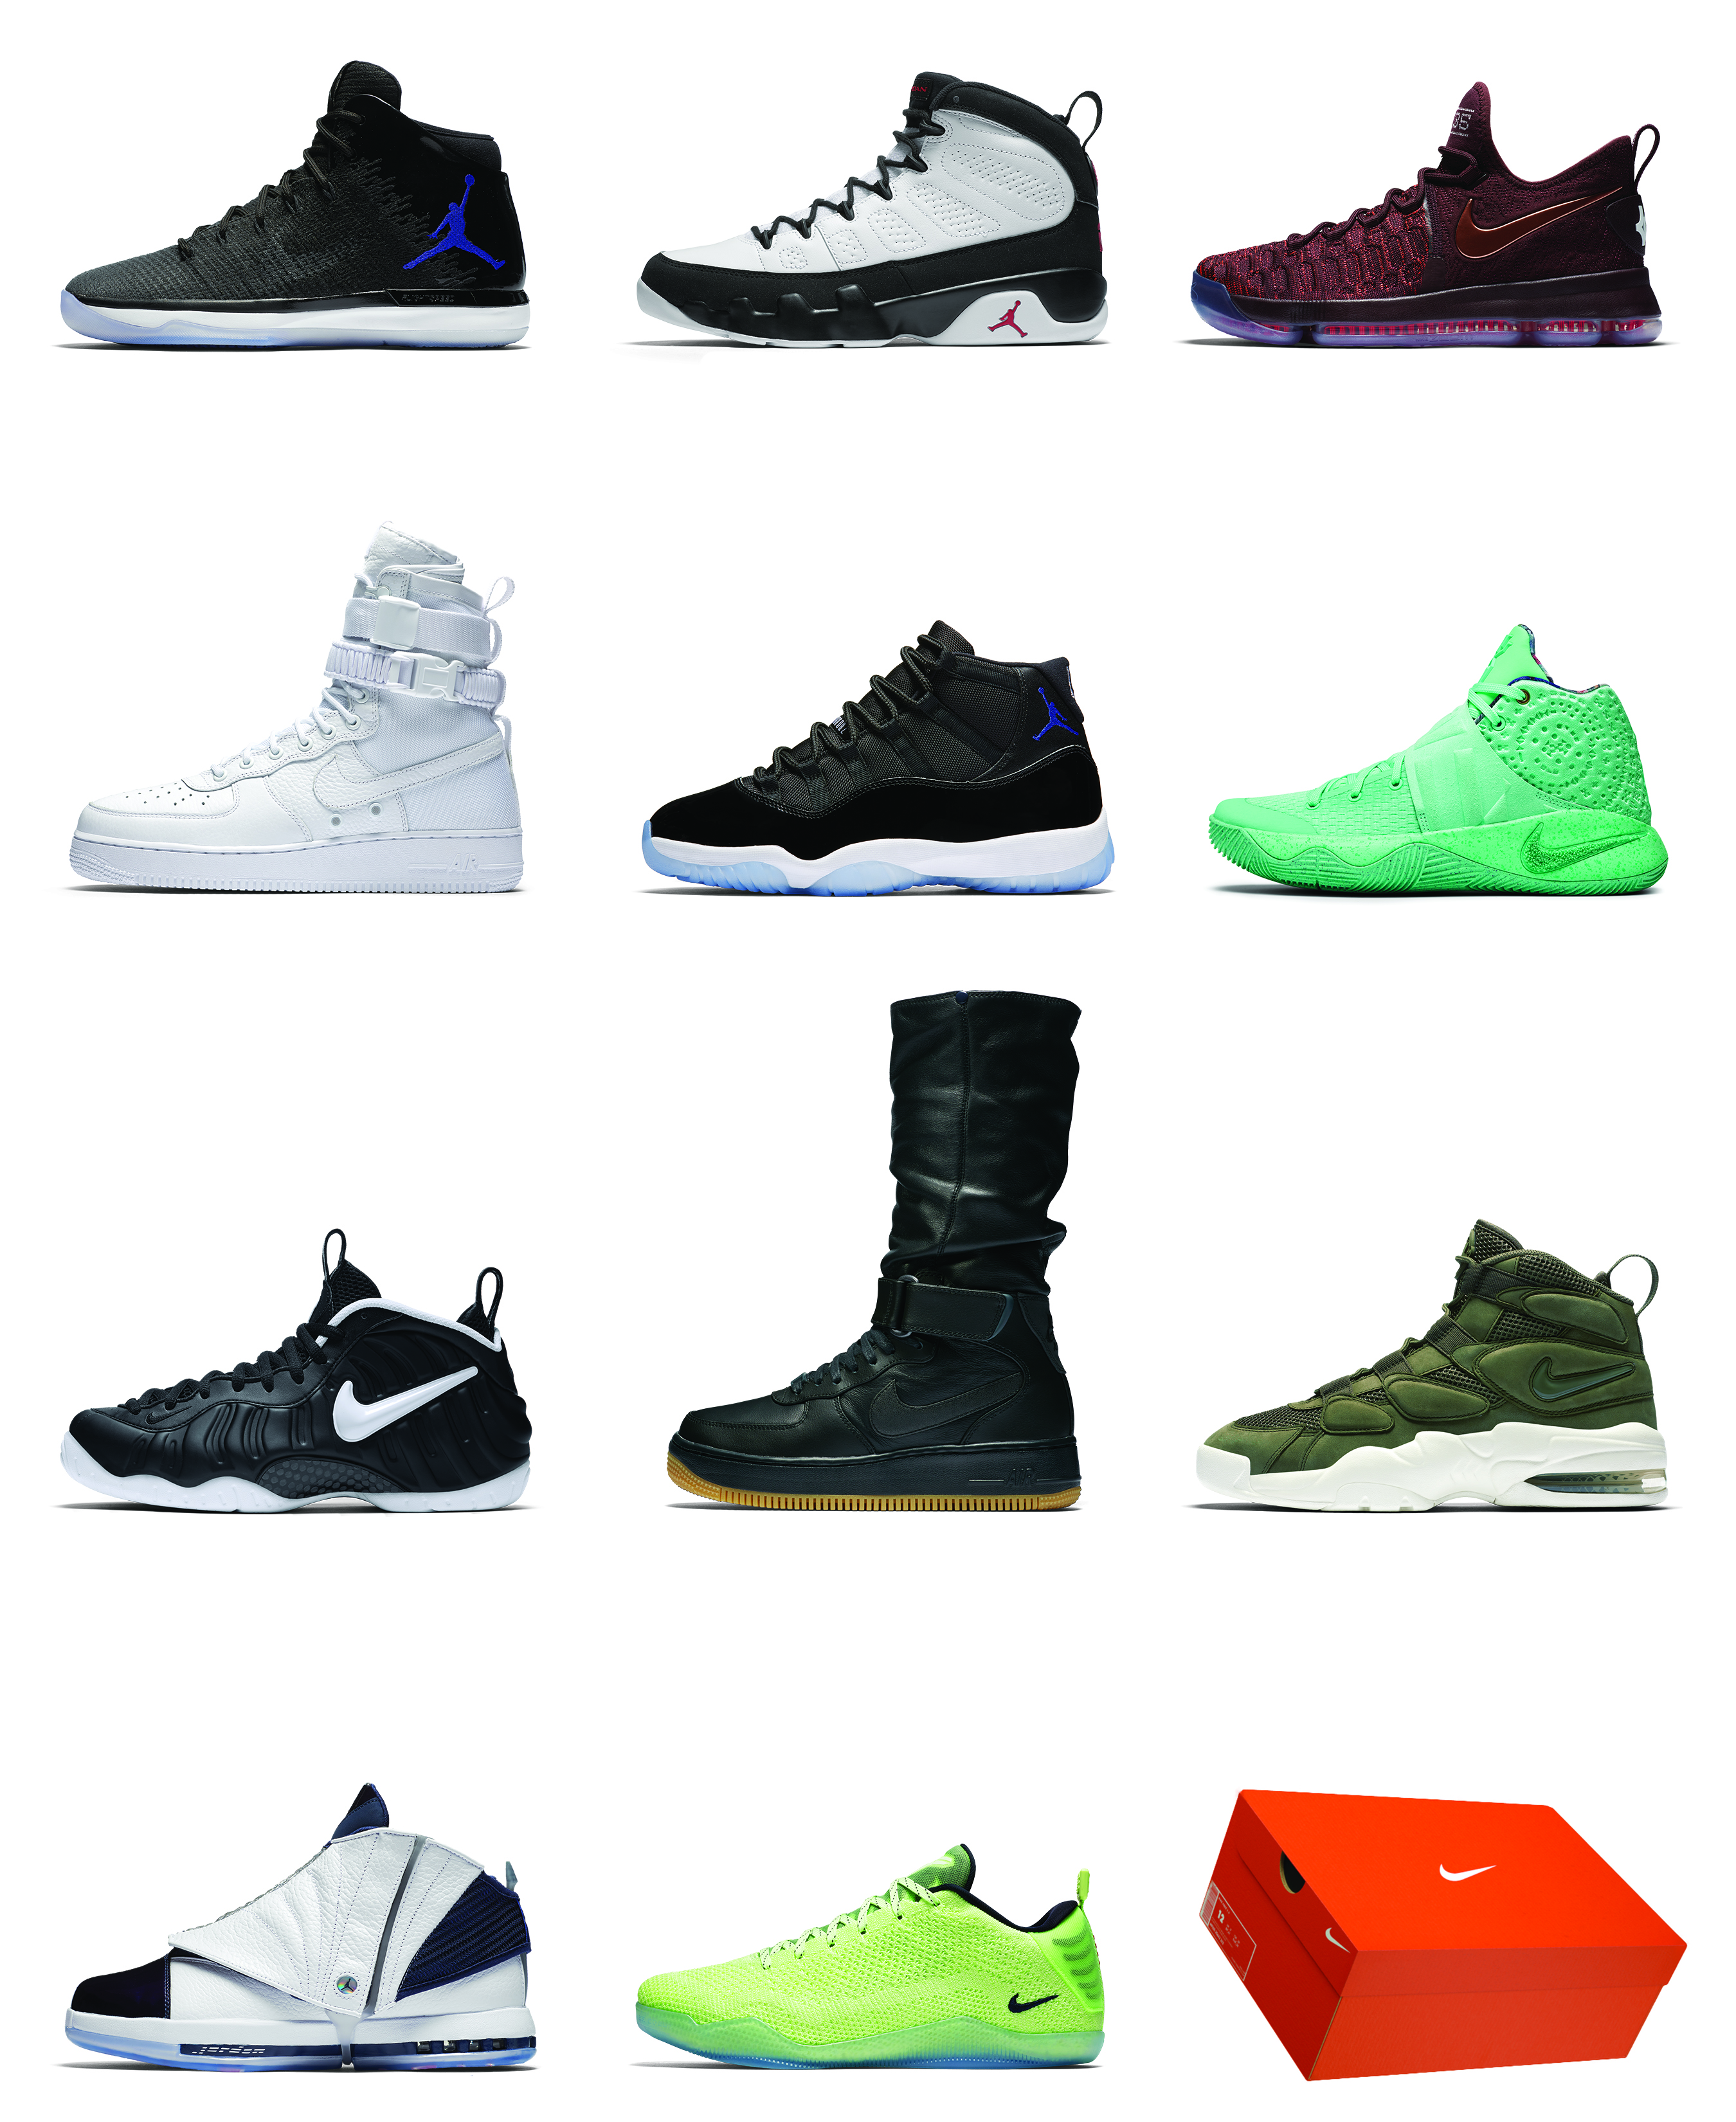 Nike Holiday Sneaker Releases